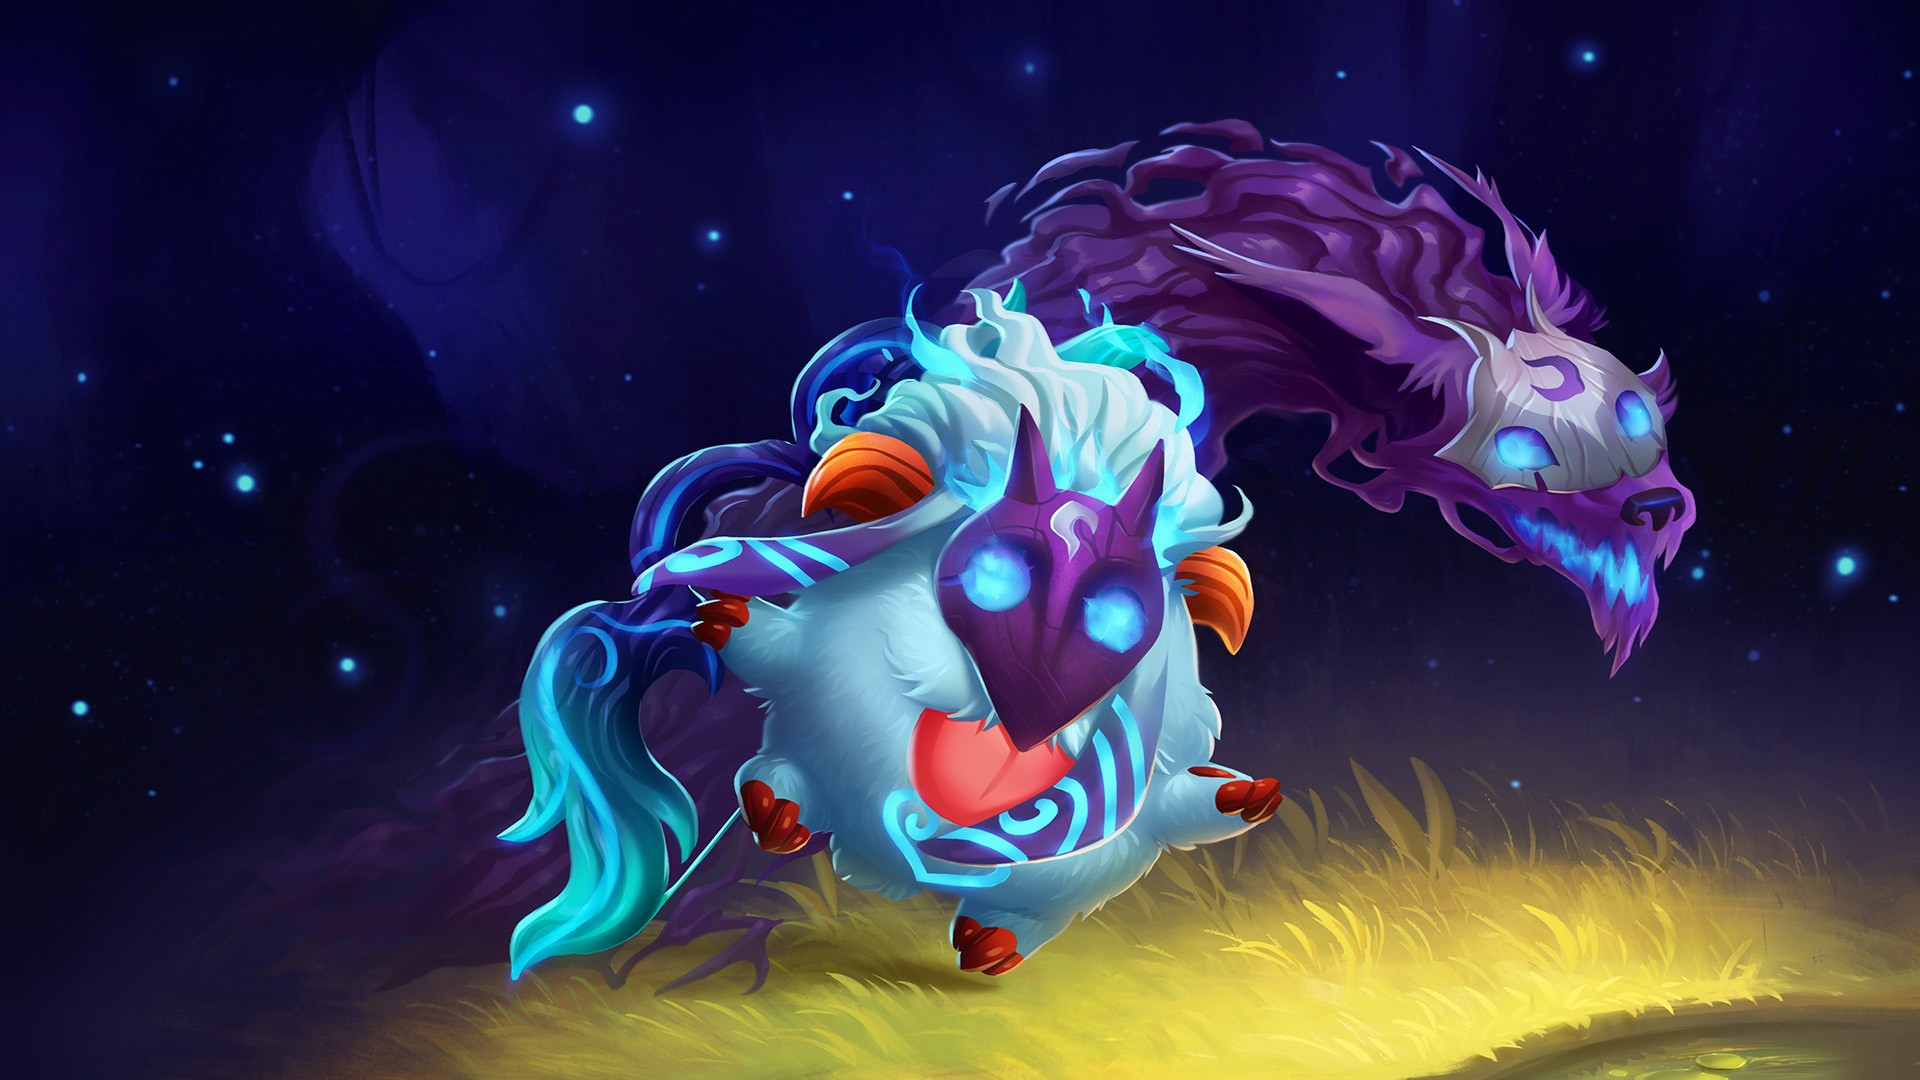 Kindred Poro wallpaper